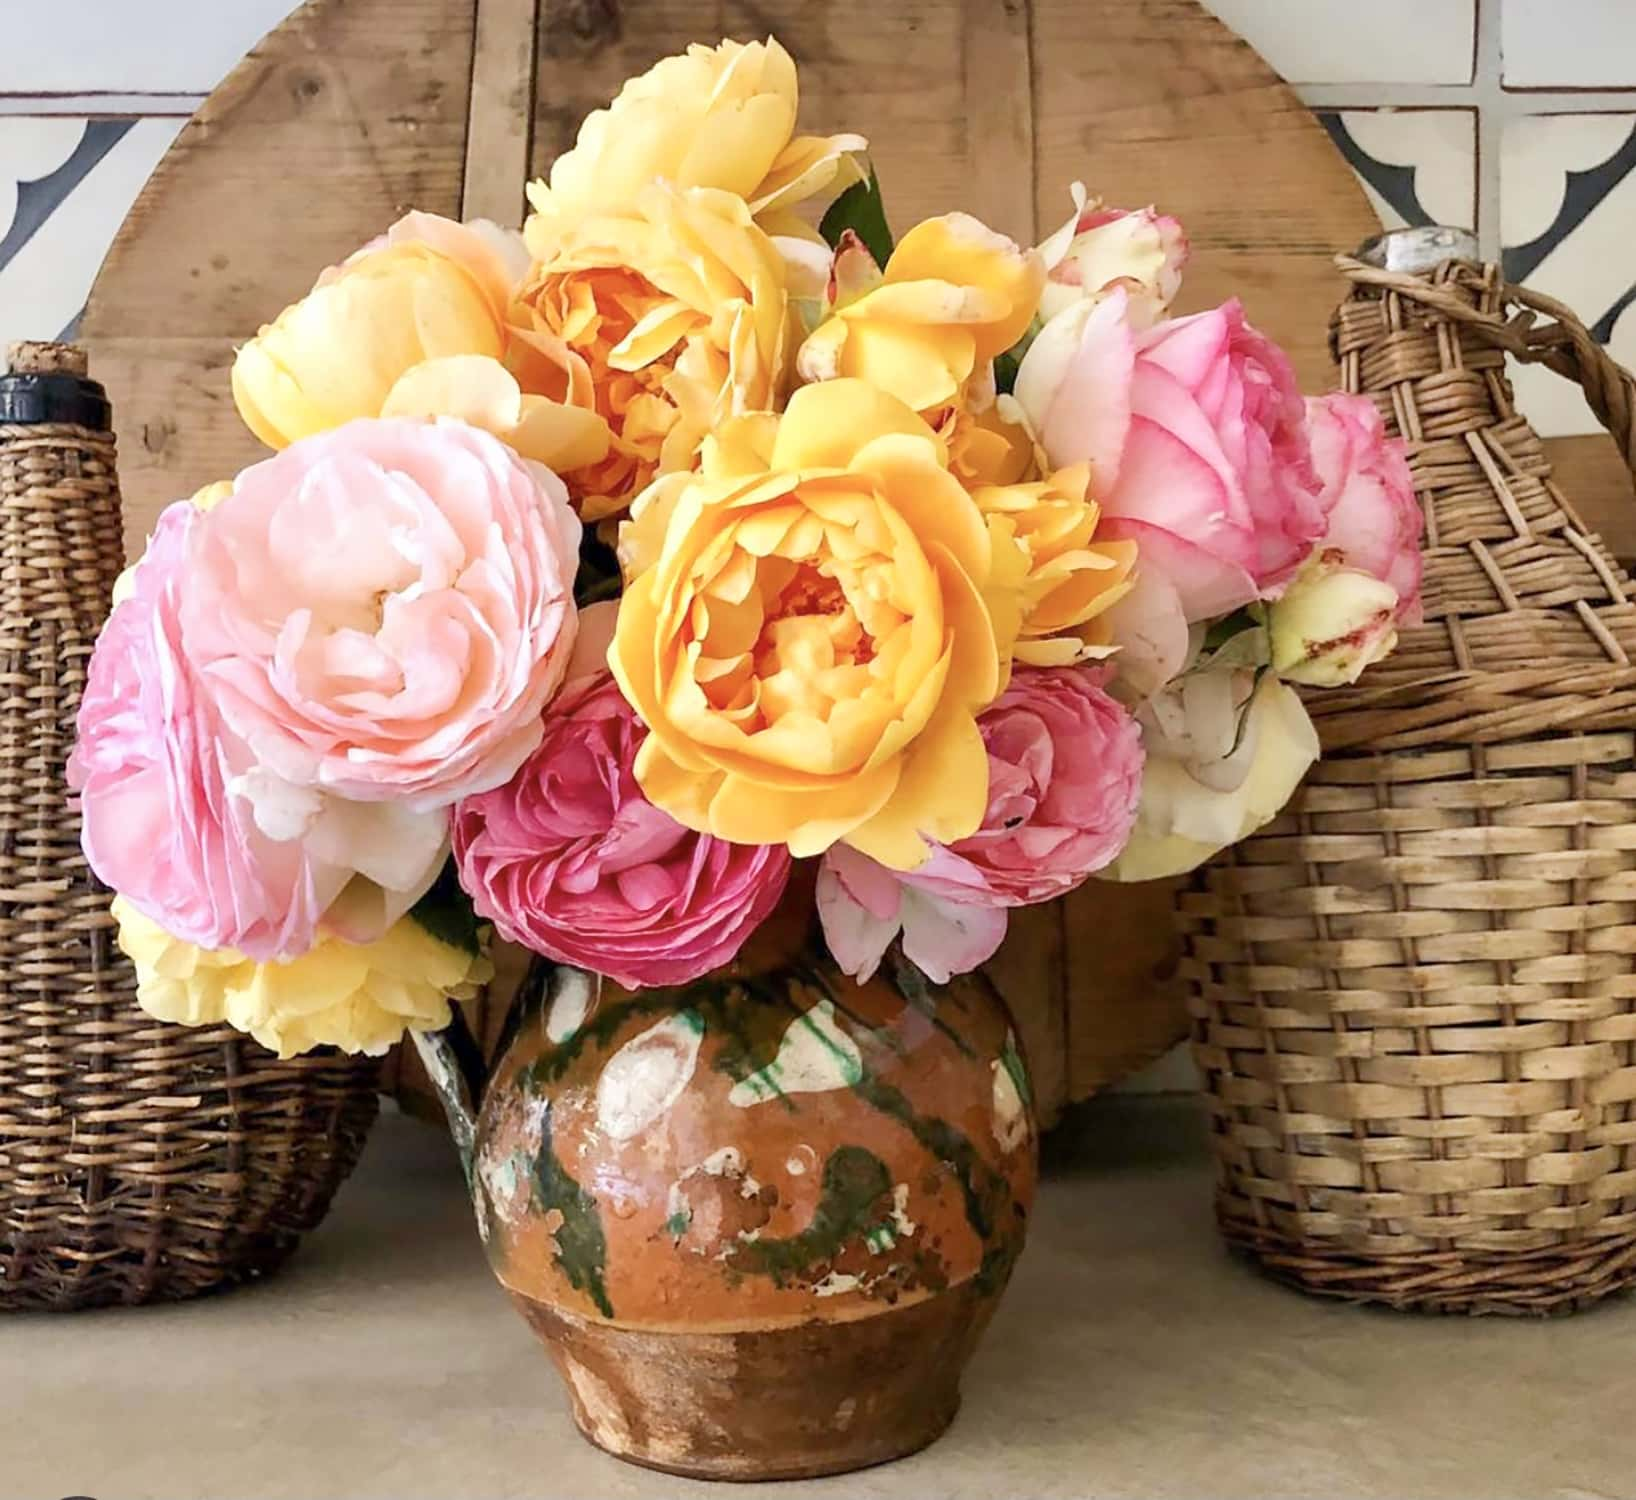 pink and yellow roses from cindy hattersley's garden